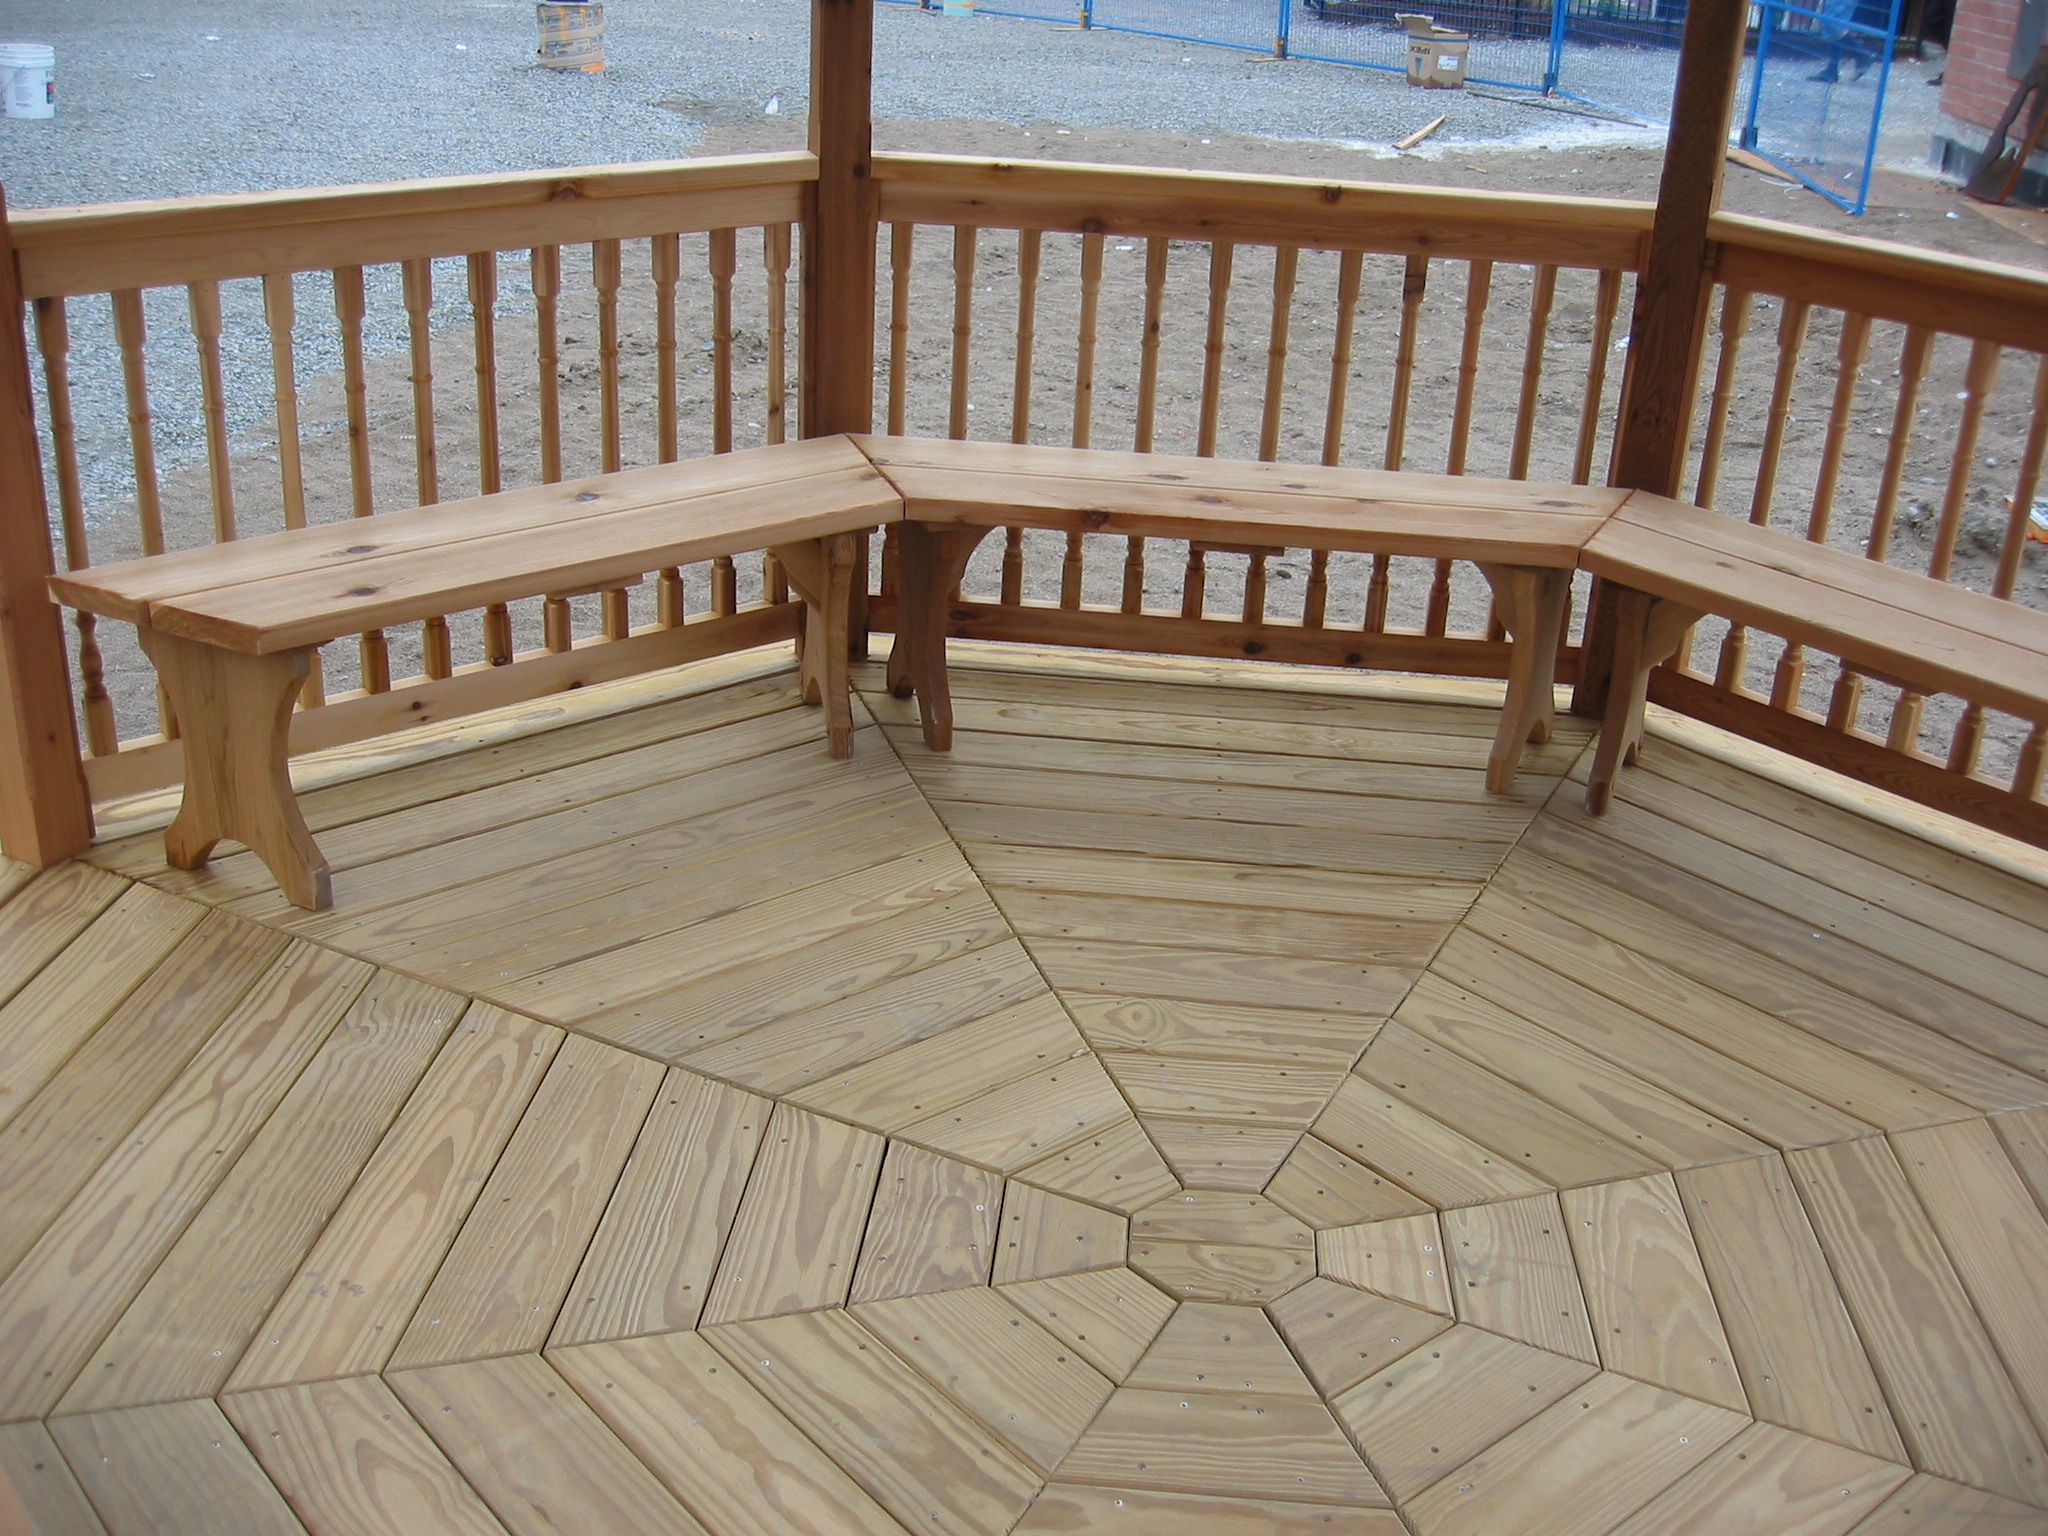 Home countryside gazebos canada Virtual flooring